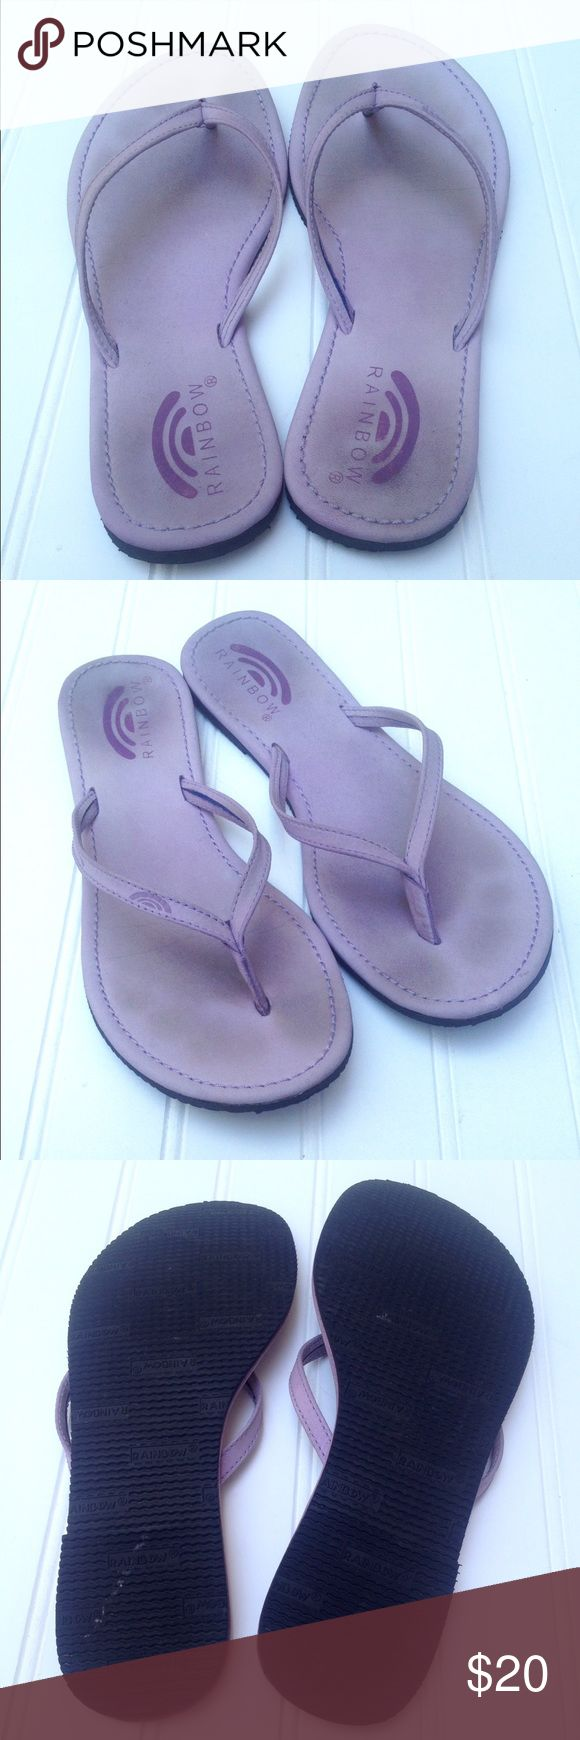 """Lavender leather Rainbow flip flops sandals Very gently loved lavender purple leather sandal flip flop Rainbows. No significant wear to heels, front edges or soles. See pics for proof of condition. Thin strap upper and textured black rubber sole. No memory foam cushion or layering. Size 7/8. Insole measures 10"""" long and 3 3/4"""" wide at widest. Worn just a couple times. Feel free to ask questions or make an offer! Rainbow Shoes Sandals"""